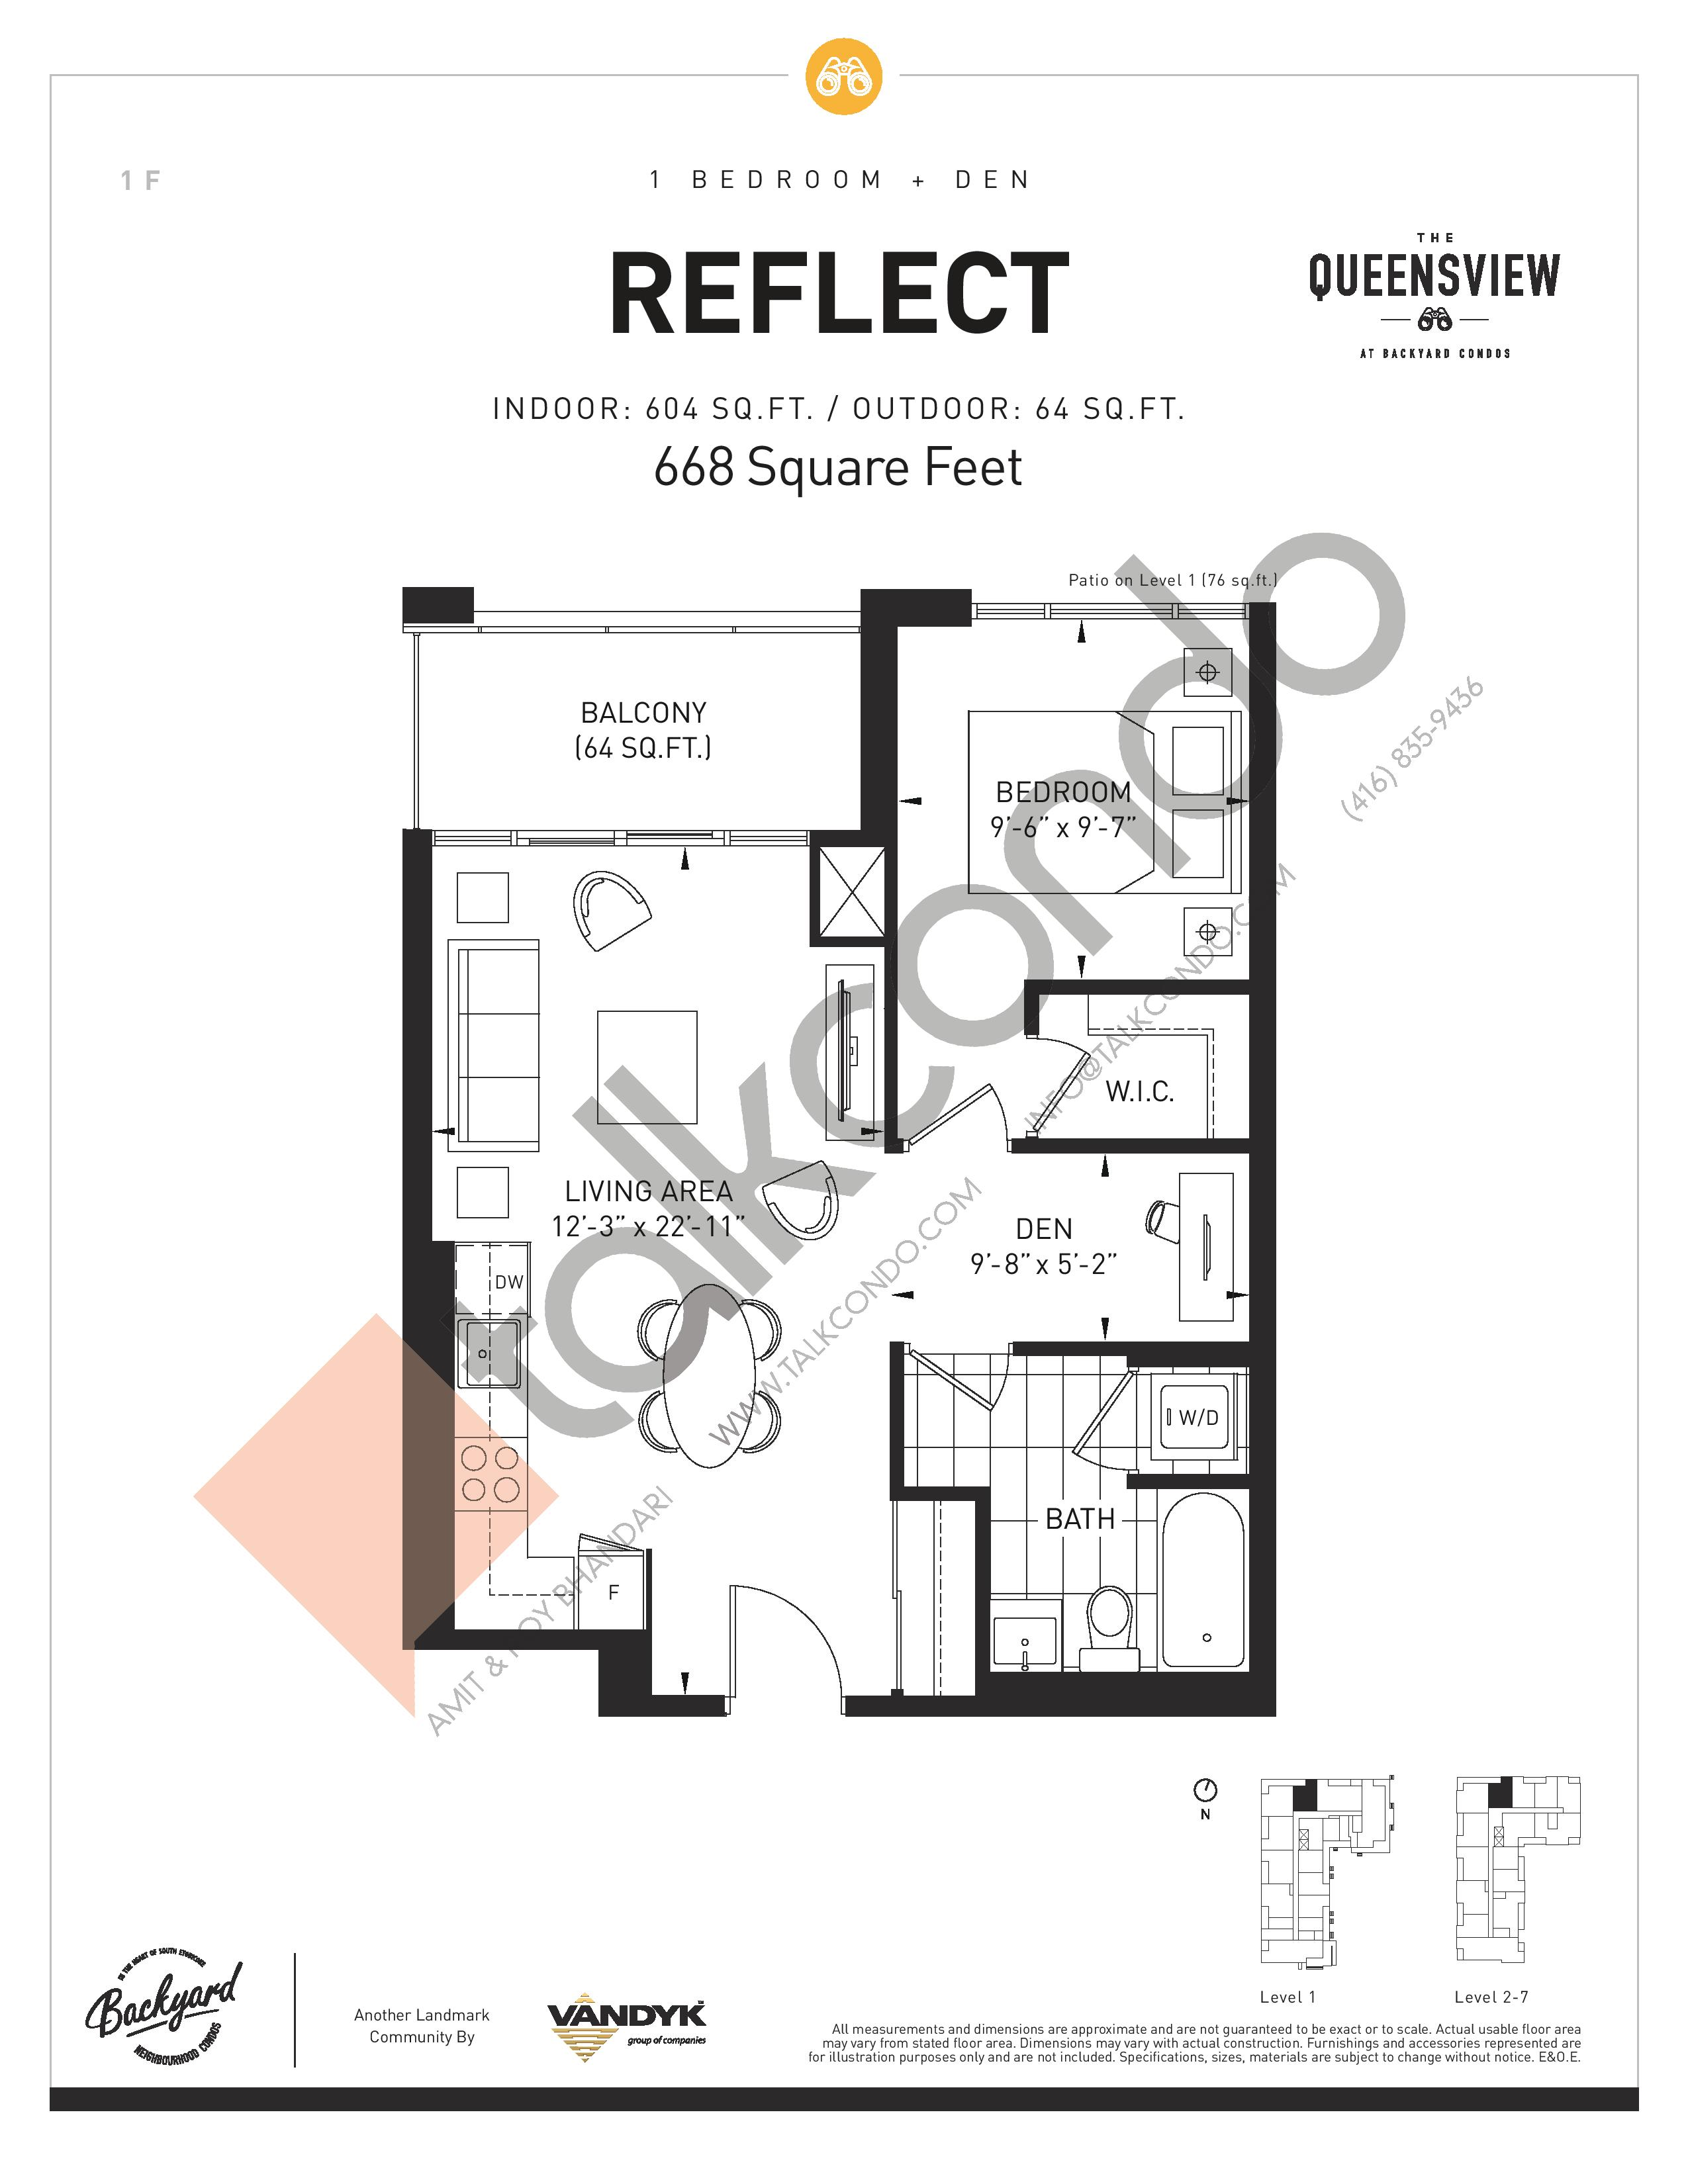 Reflect Floor Plan at The Queensview at Backyard Condos - 604 sq.ft